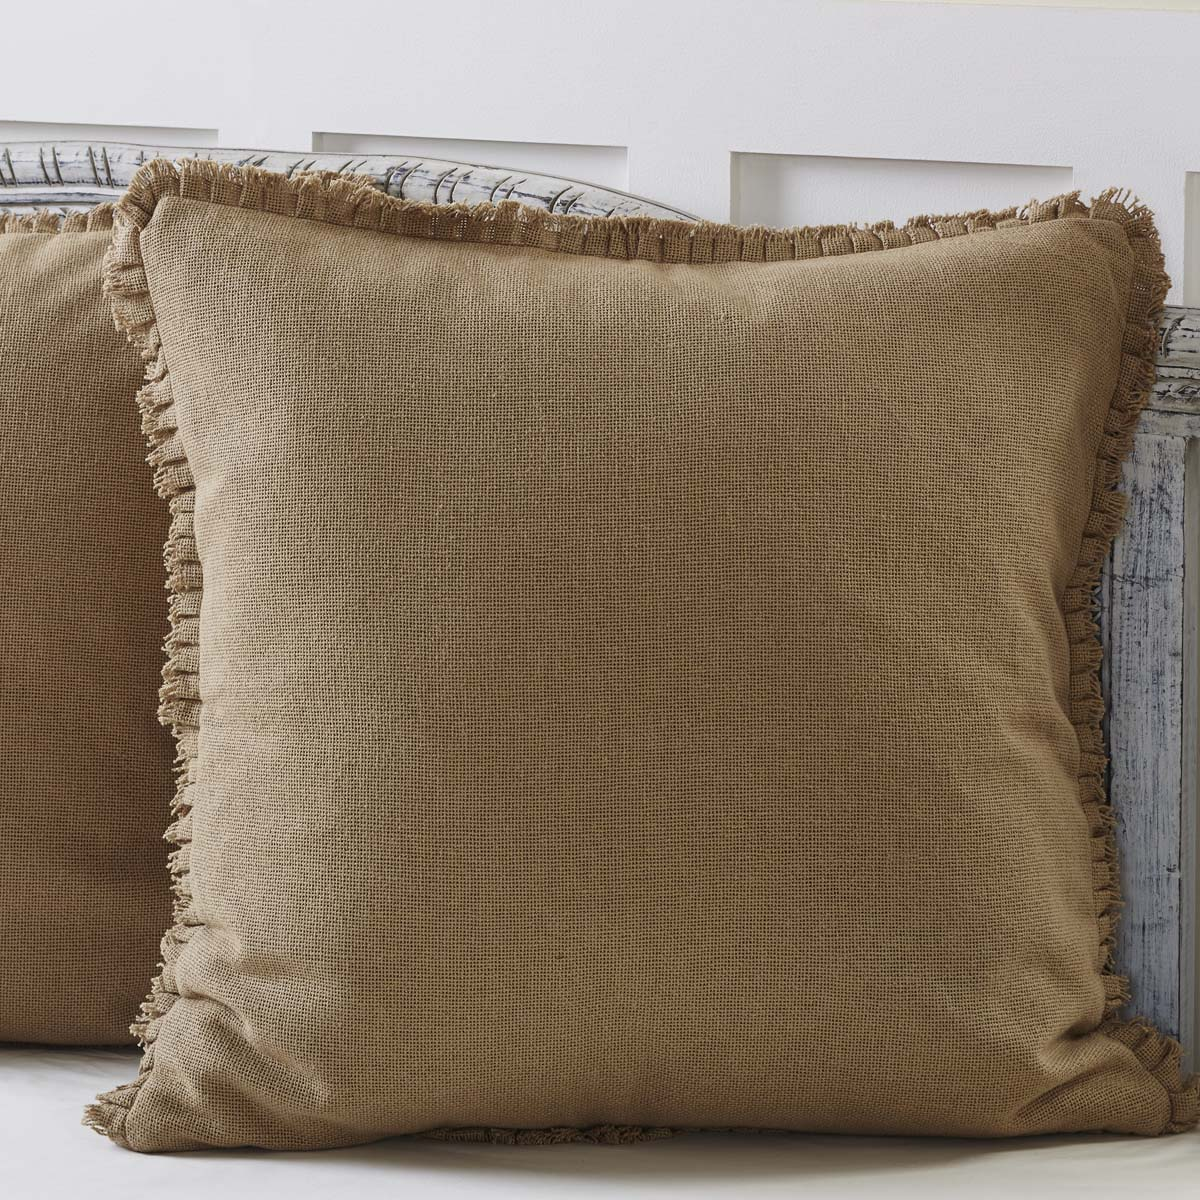 Burlap Natural Fabric Euro Sham w- Fringed Ruffle 26x26 - Woodrol